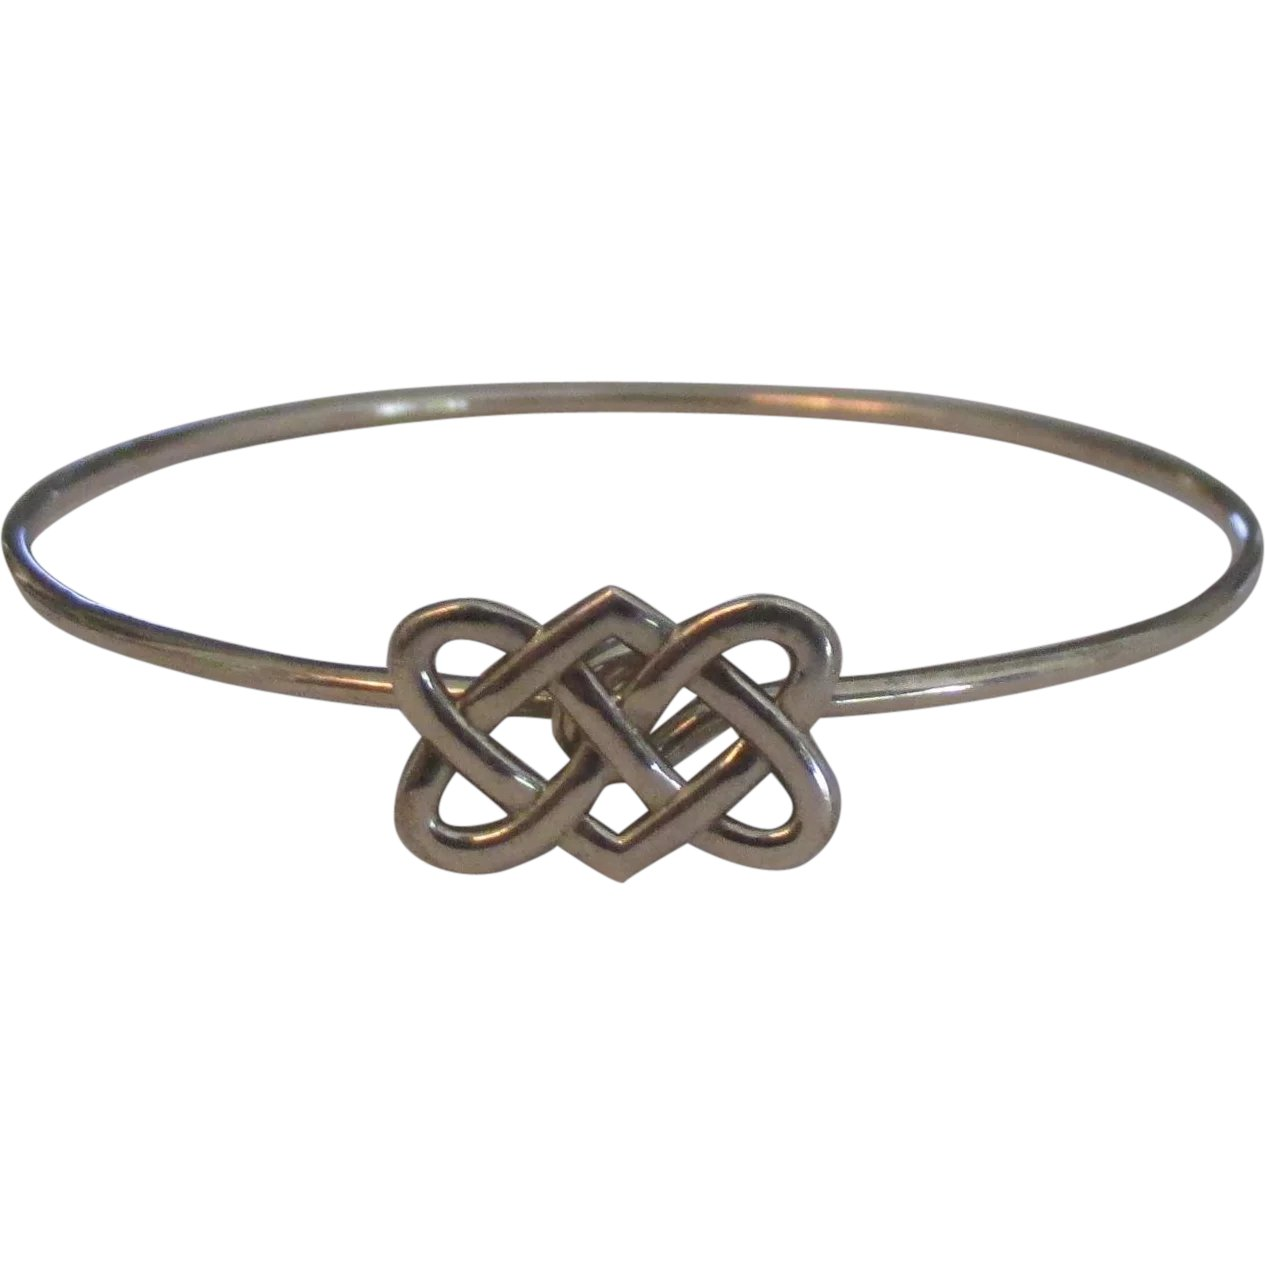 ffb924ee7 Signed Tiffany & Co Paloma Picasso Celtic Knot Sterling Bracelet : Del Mar  Classique | Ruby Lane